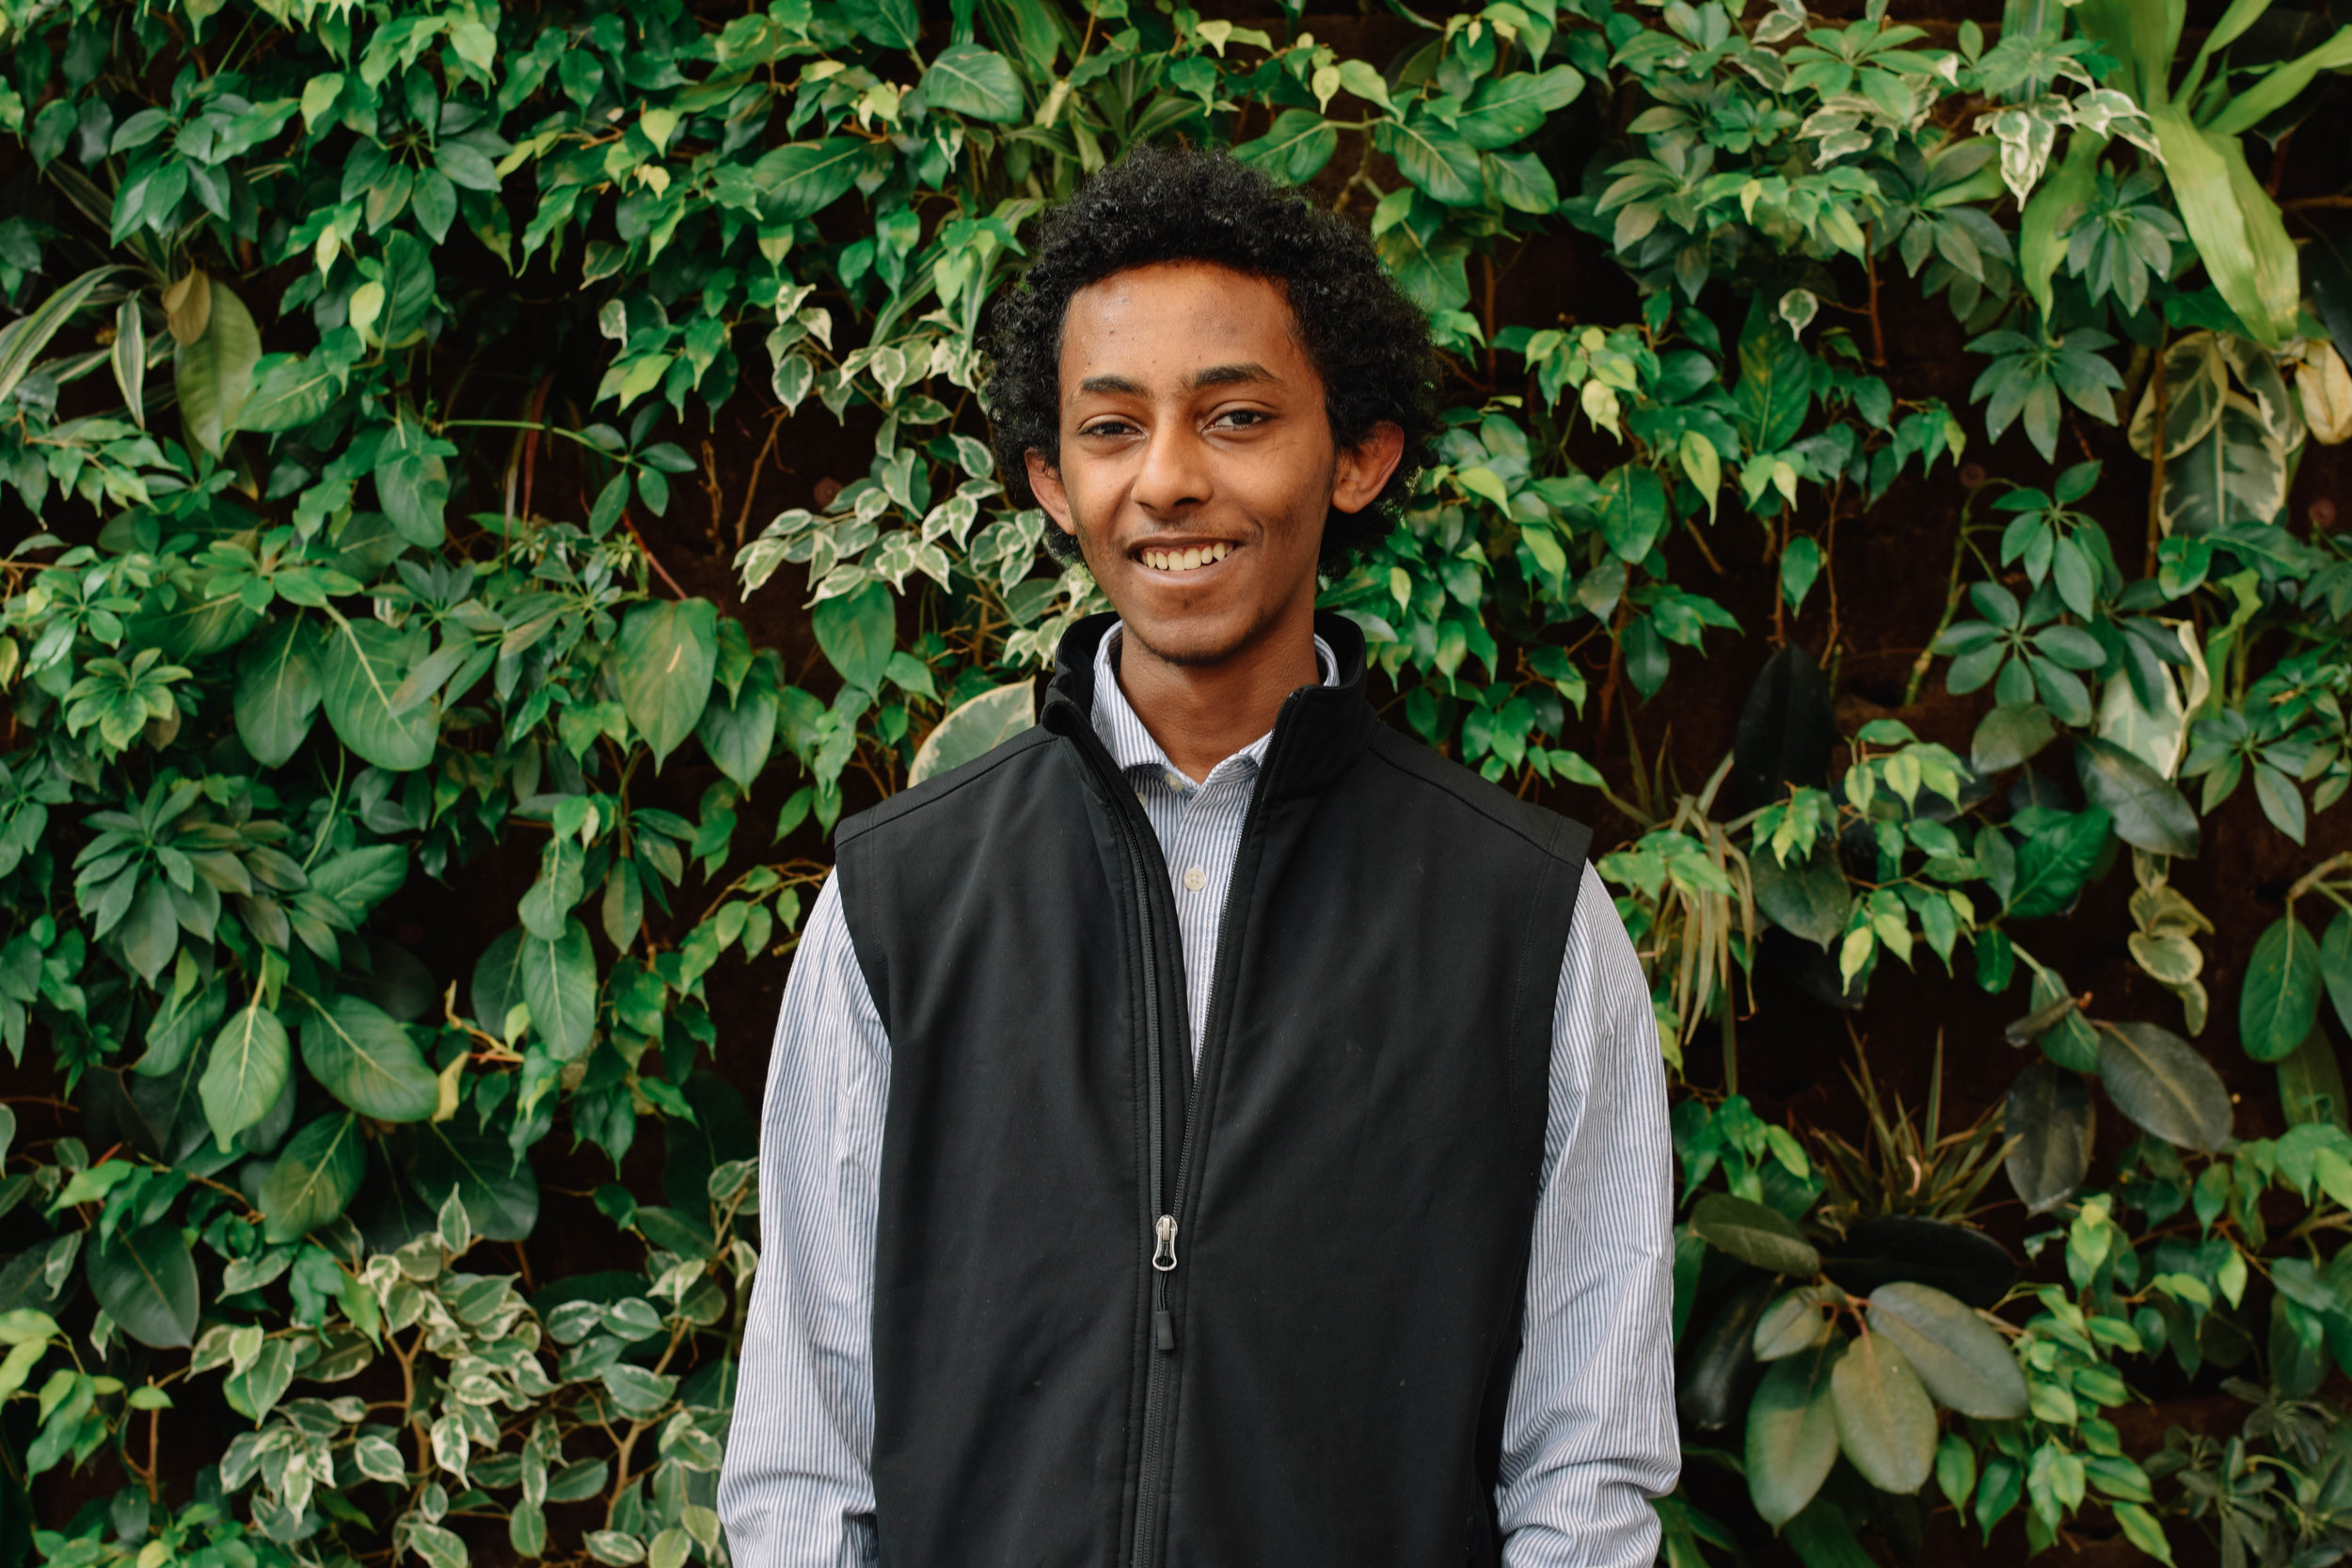 STEM Cycle - A summer program in Ethiopia that empowers high school students to understand and implement the scientific method to solve problems in their communityELIYAS ASFAW